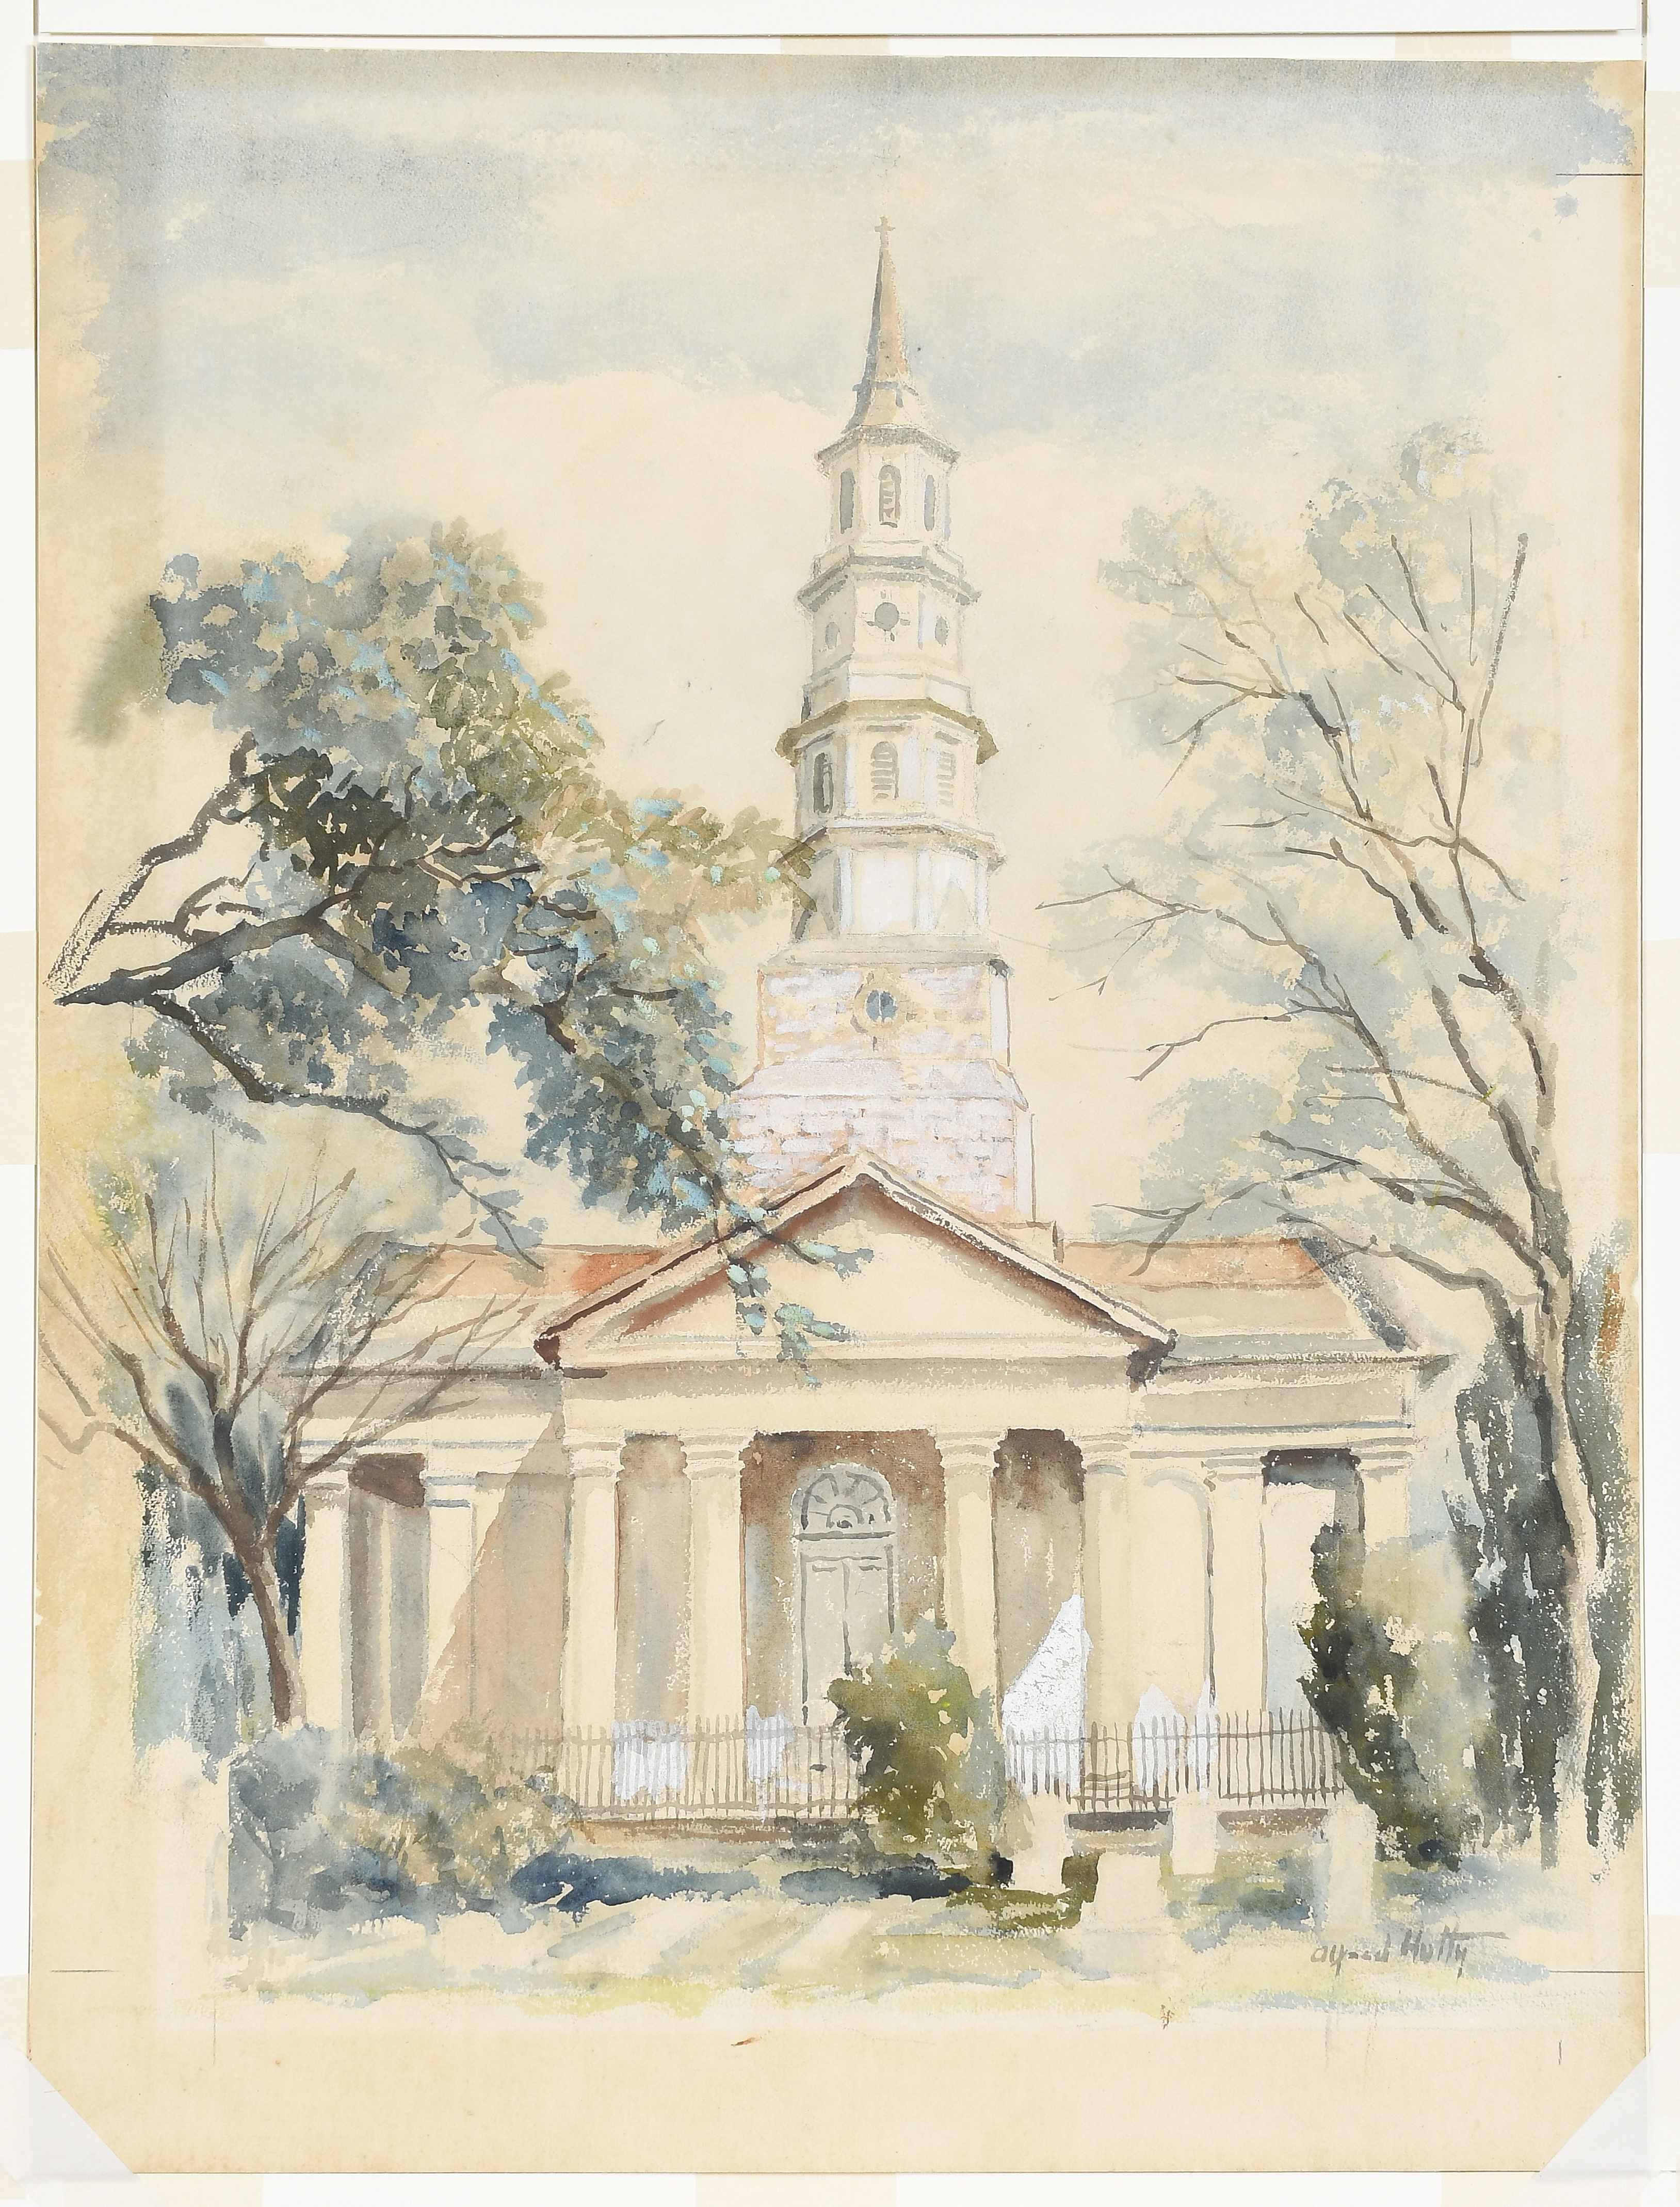 Old St Phillips, Alfred Heber Hutty. 1950, watercolor and gouache on paper.